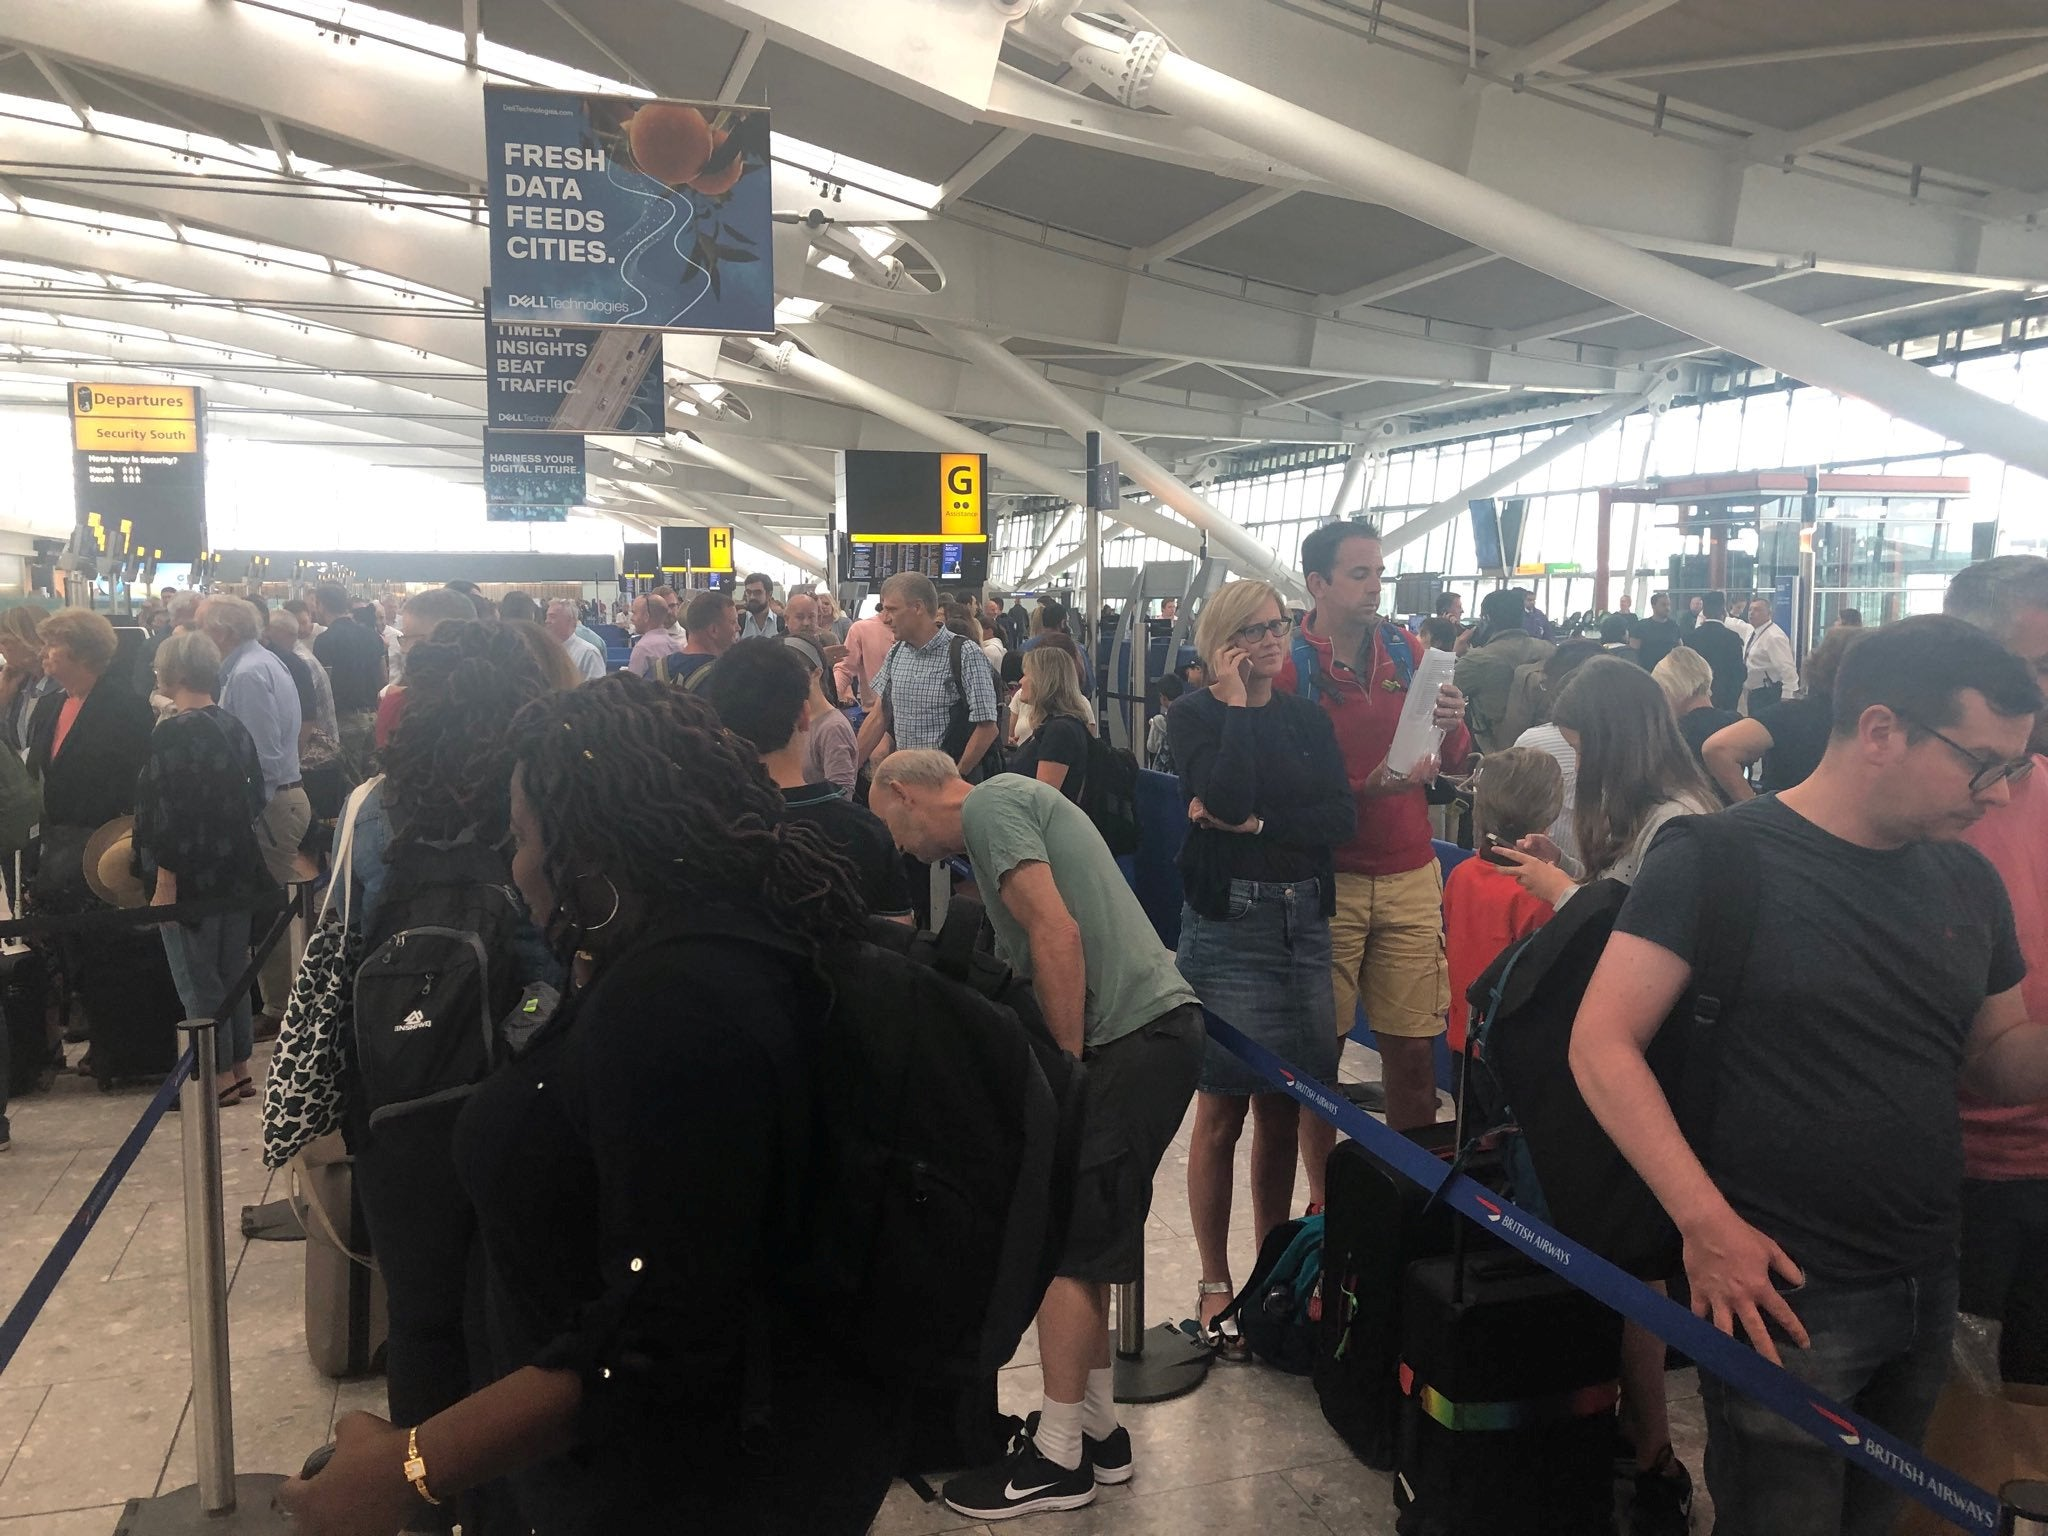 Heathrow - latest news, breaking stories and comment - The